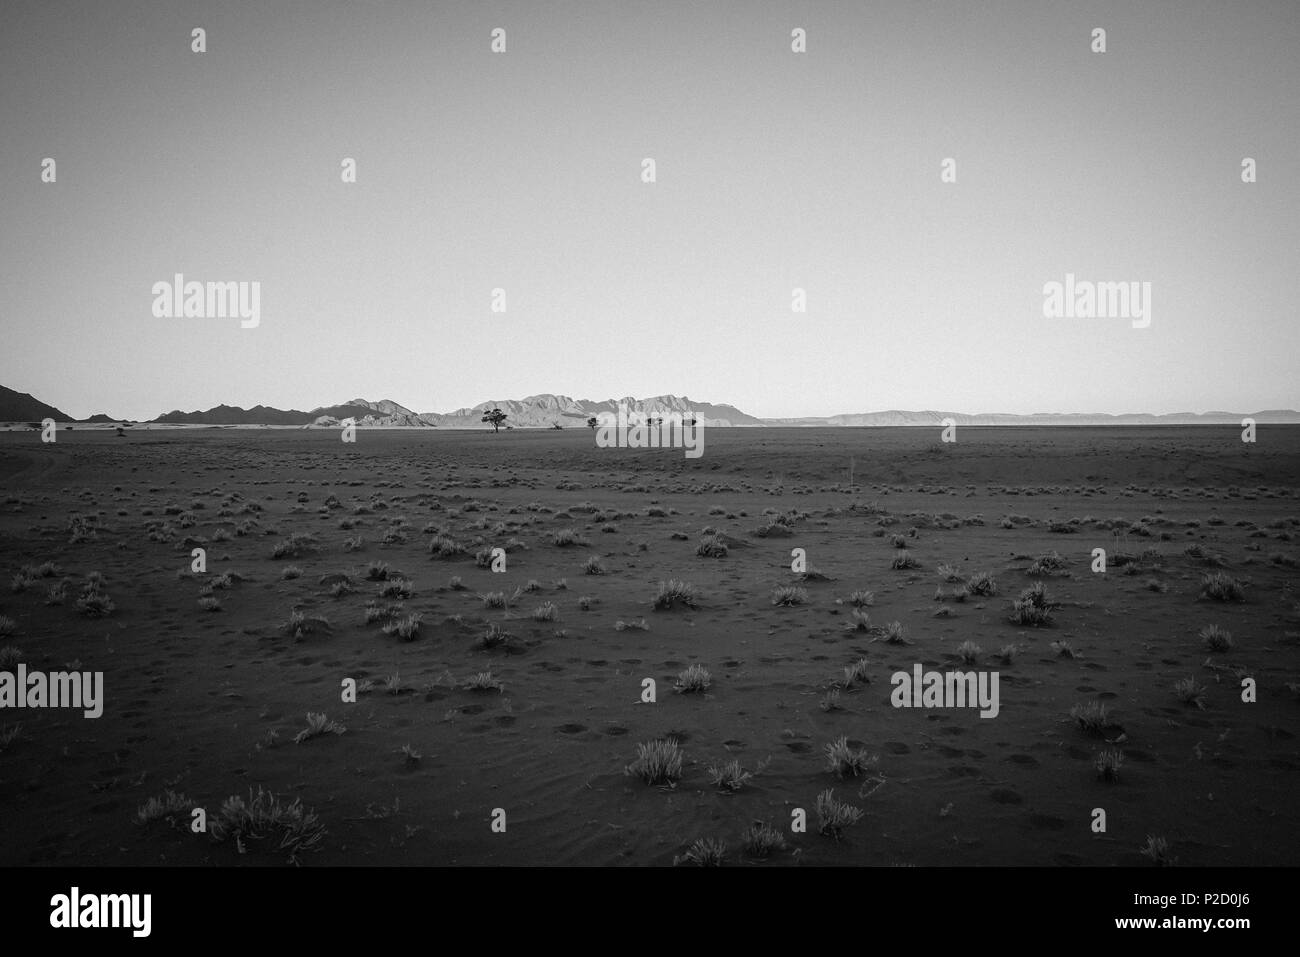 Grainy old style effect image typically  dry flat landscape in Namibia in monochrome - Stock Image